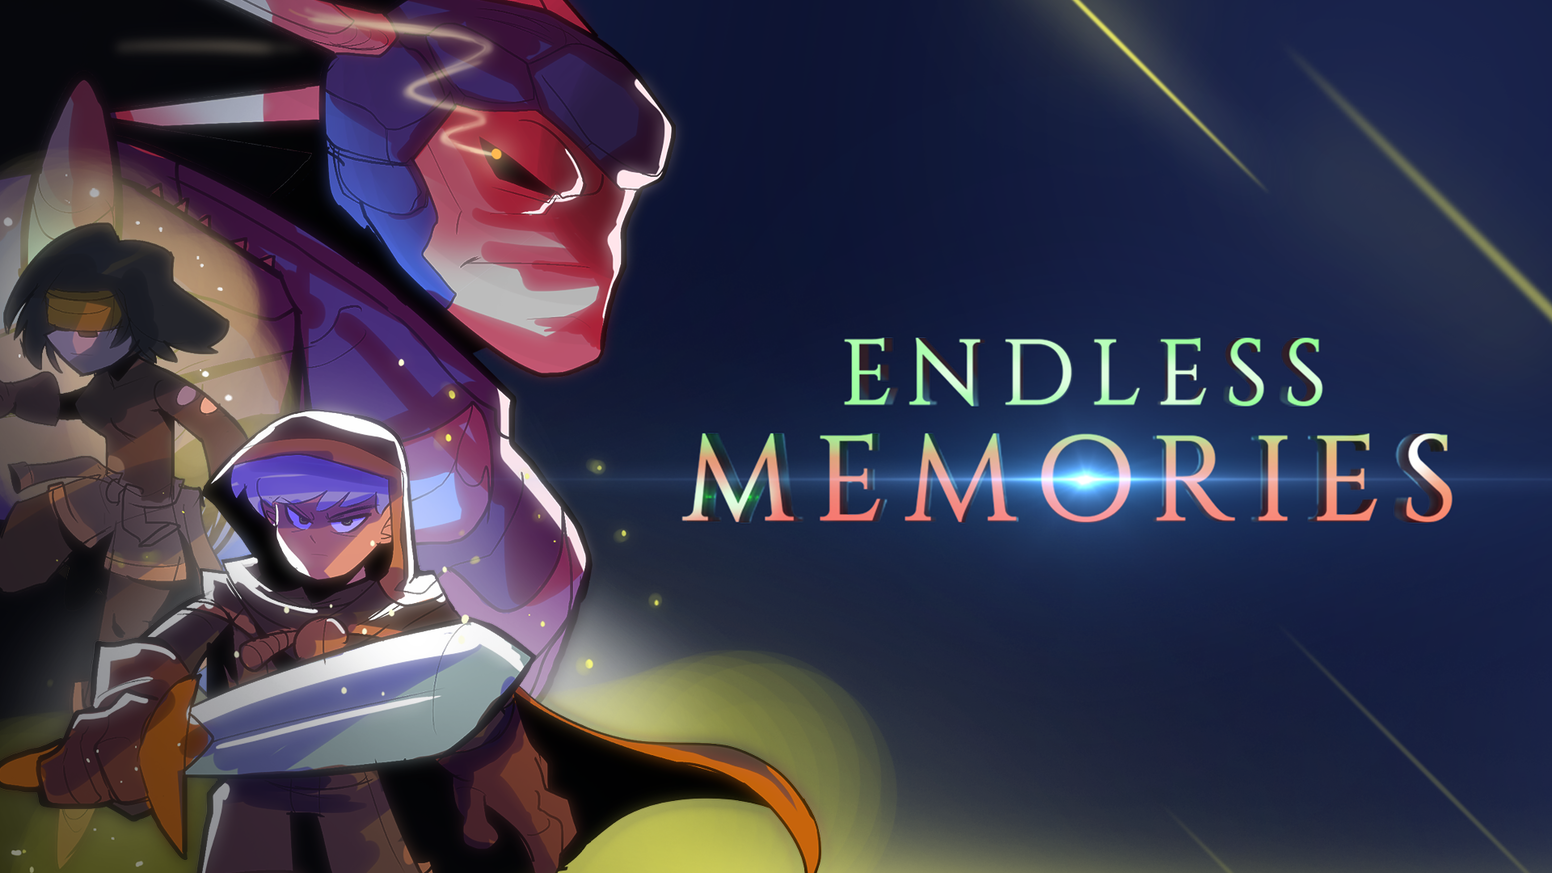 A magical 2D action-adventure set in the world of dreams. Explore a vast dream-world to recover all your lost memories.